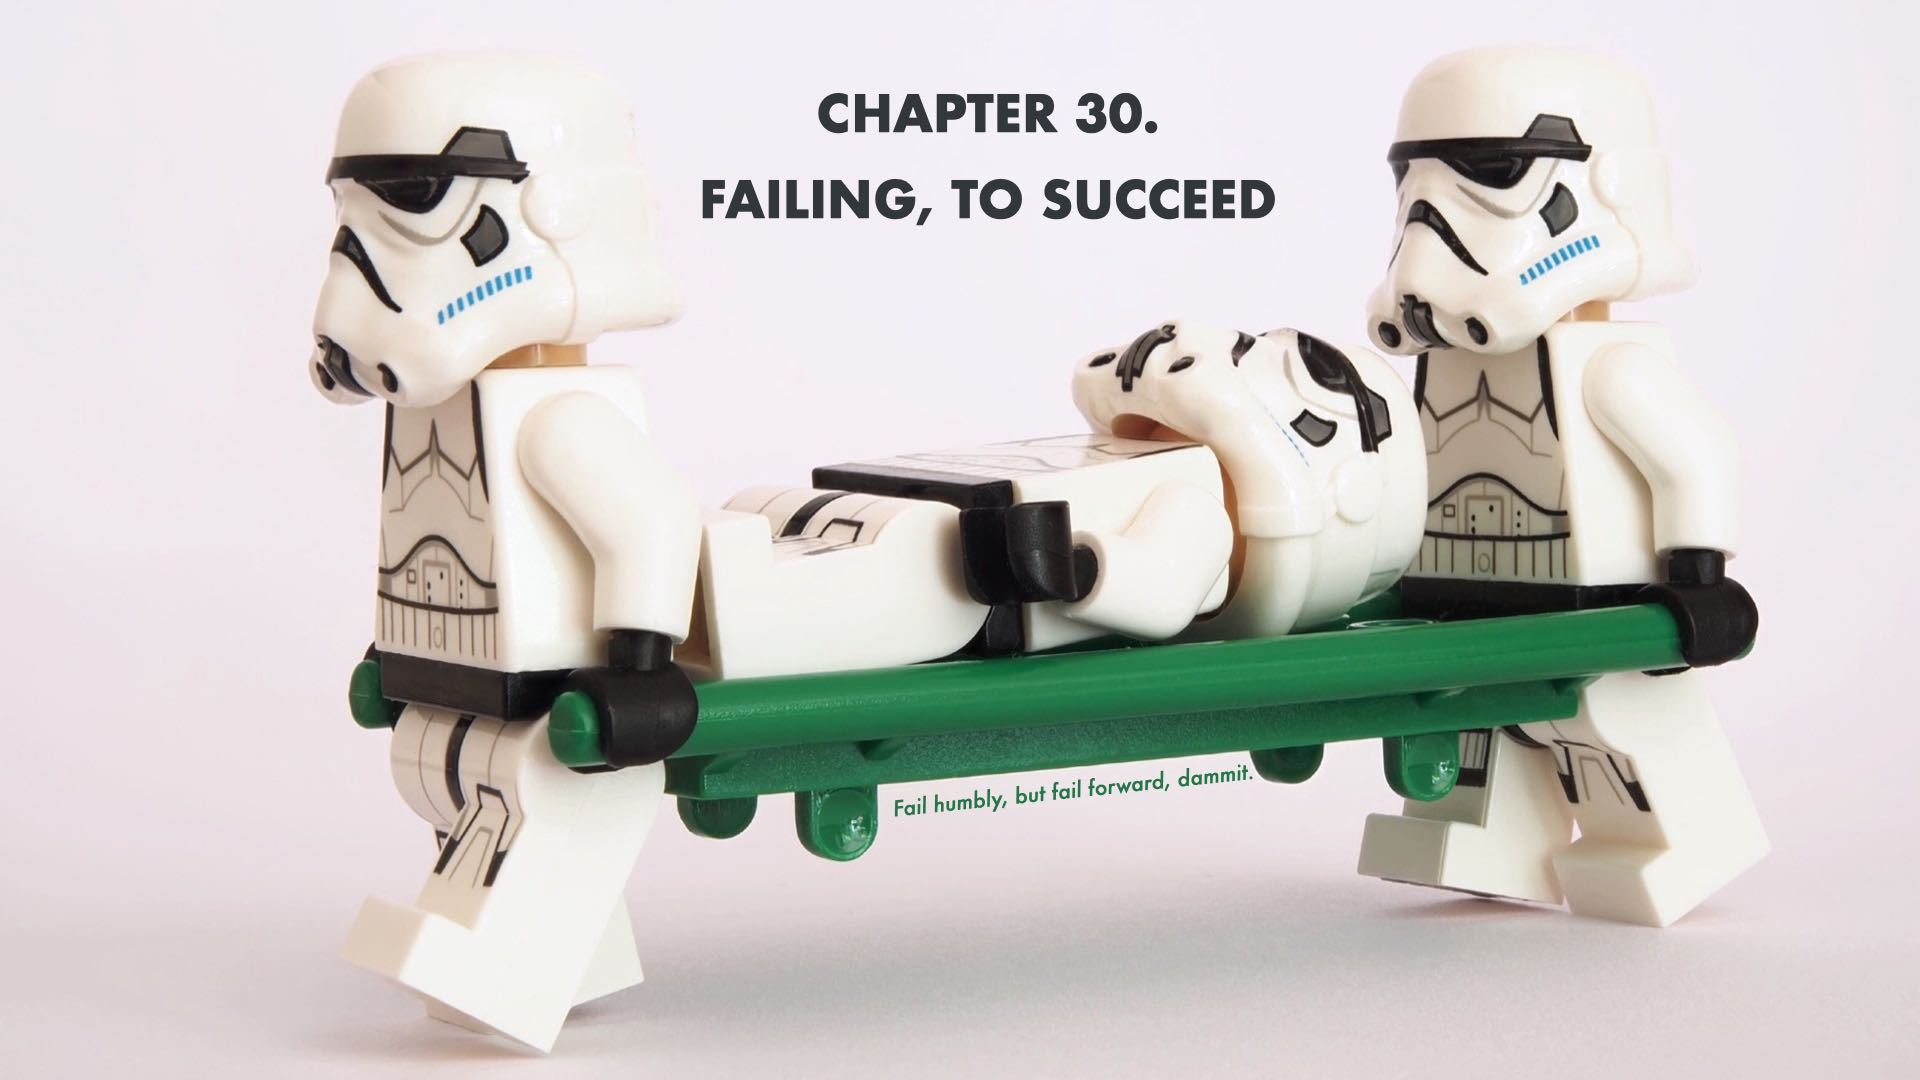 Failing, To Succeed